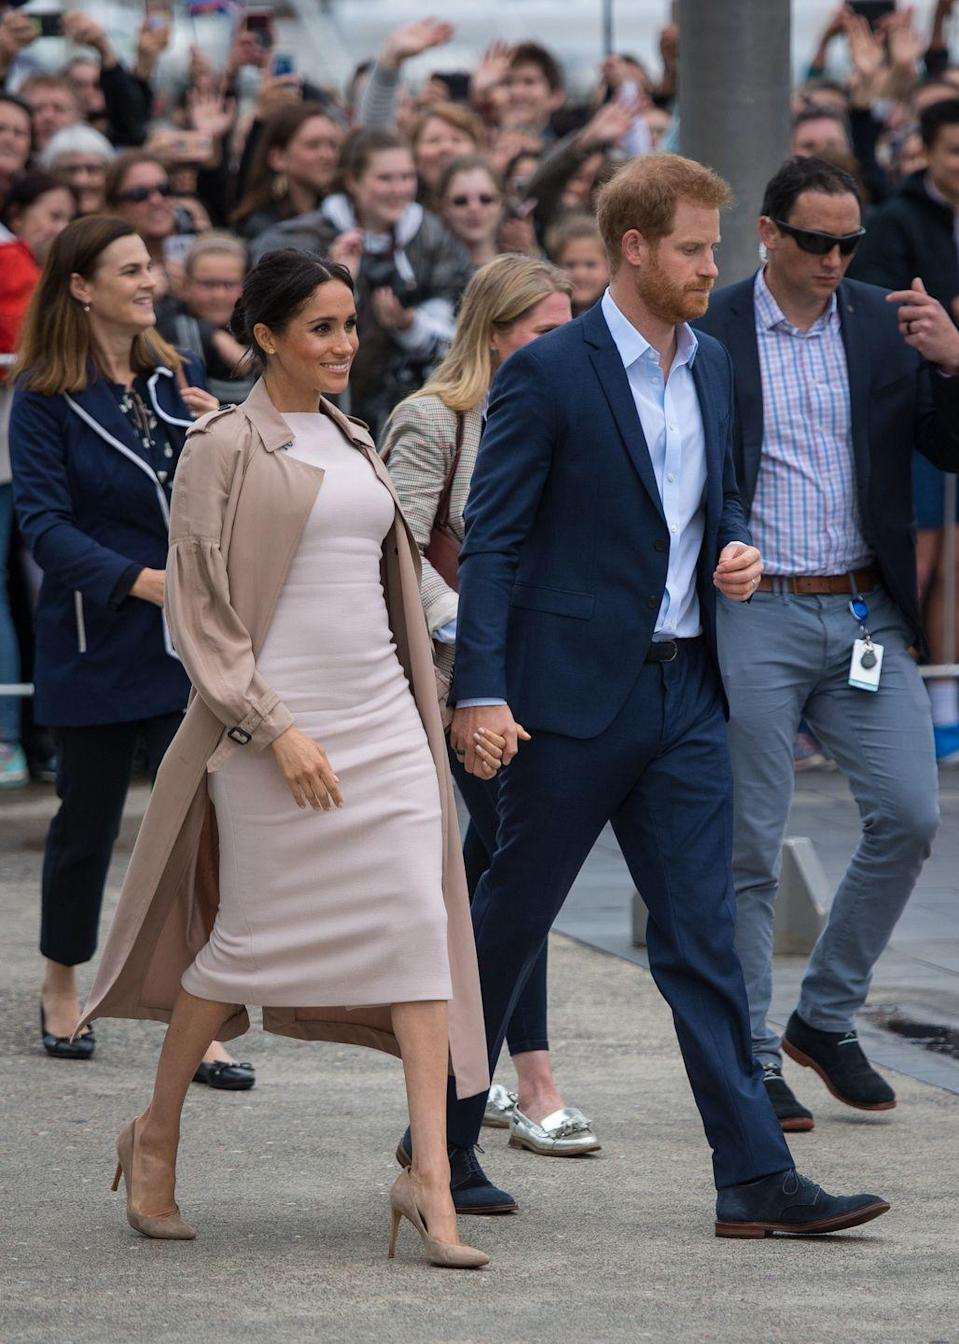 "<p>While in Auckland, Harry and Meghan greeted members of the public. The Ducehss paired a beige pencil dress by Brandon Maxwell with a Burberry trench and <a href=""https://www.stuartweitzman.com/products/legend"" rel=""nofollow noopener"" target=""_blank"" data-ylk=""slk:Stuart Weitzman"" class=""link rapid-noclick-resp"">Stuart Weitzman </a>pumps for the appearance.</p><p><a class=""link rapid-noclick-resp"" href=""https://go.redirectingat.com?id=74968X1596630&url=https%3A%2F%2Fwww.stuartweitzman.com%2Fproducts%2Flegend%2F&sref=https%3A%2F%2Fwww.townandcountrymag.com%2Fstyle%2Ffashion-trends%2Fg3272%2Fmeghan-markle-preppy-style%2F"" rel=""nofollow noopener"" target=""_blank"" data-ylk=""slk:SHOP NOW"">SHOP NOW</a> <em>Stuart Weitzman Legend Pumps, $375</em></p>"